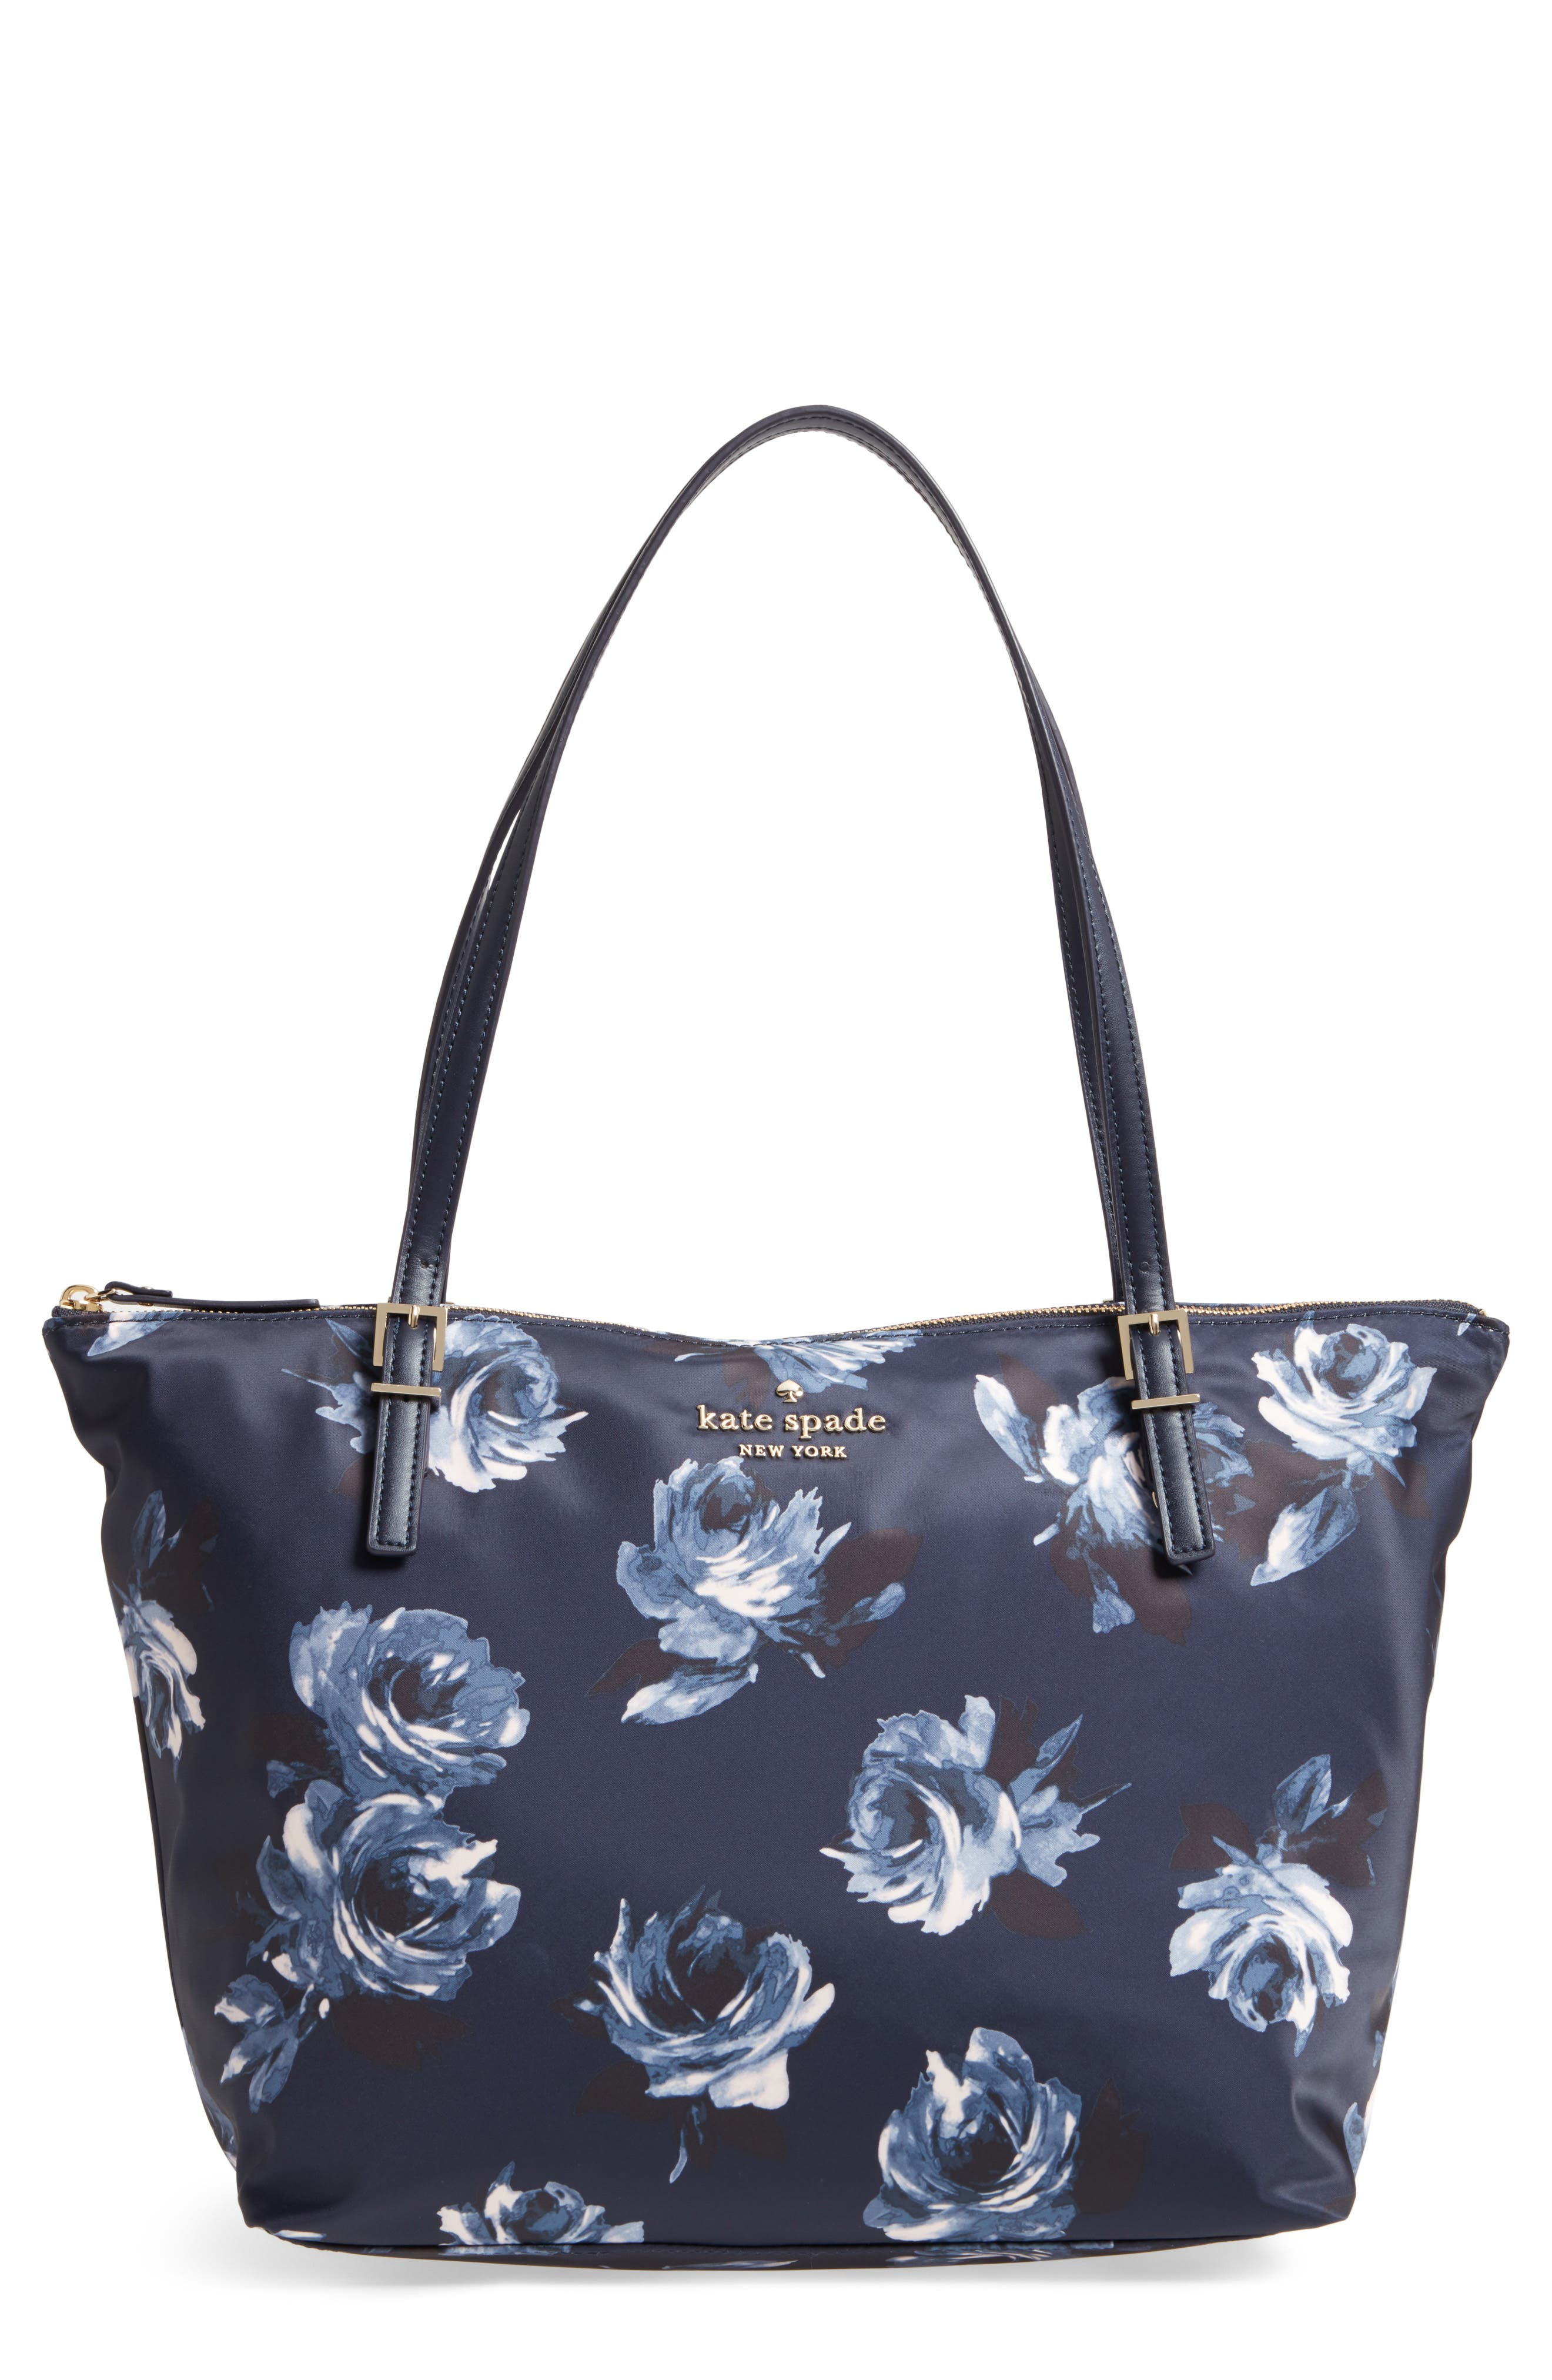 watson lane - night rose maya tote,                         Main,                         color, 485